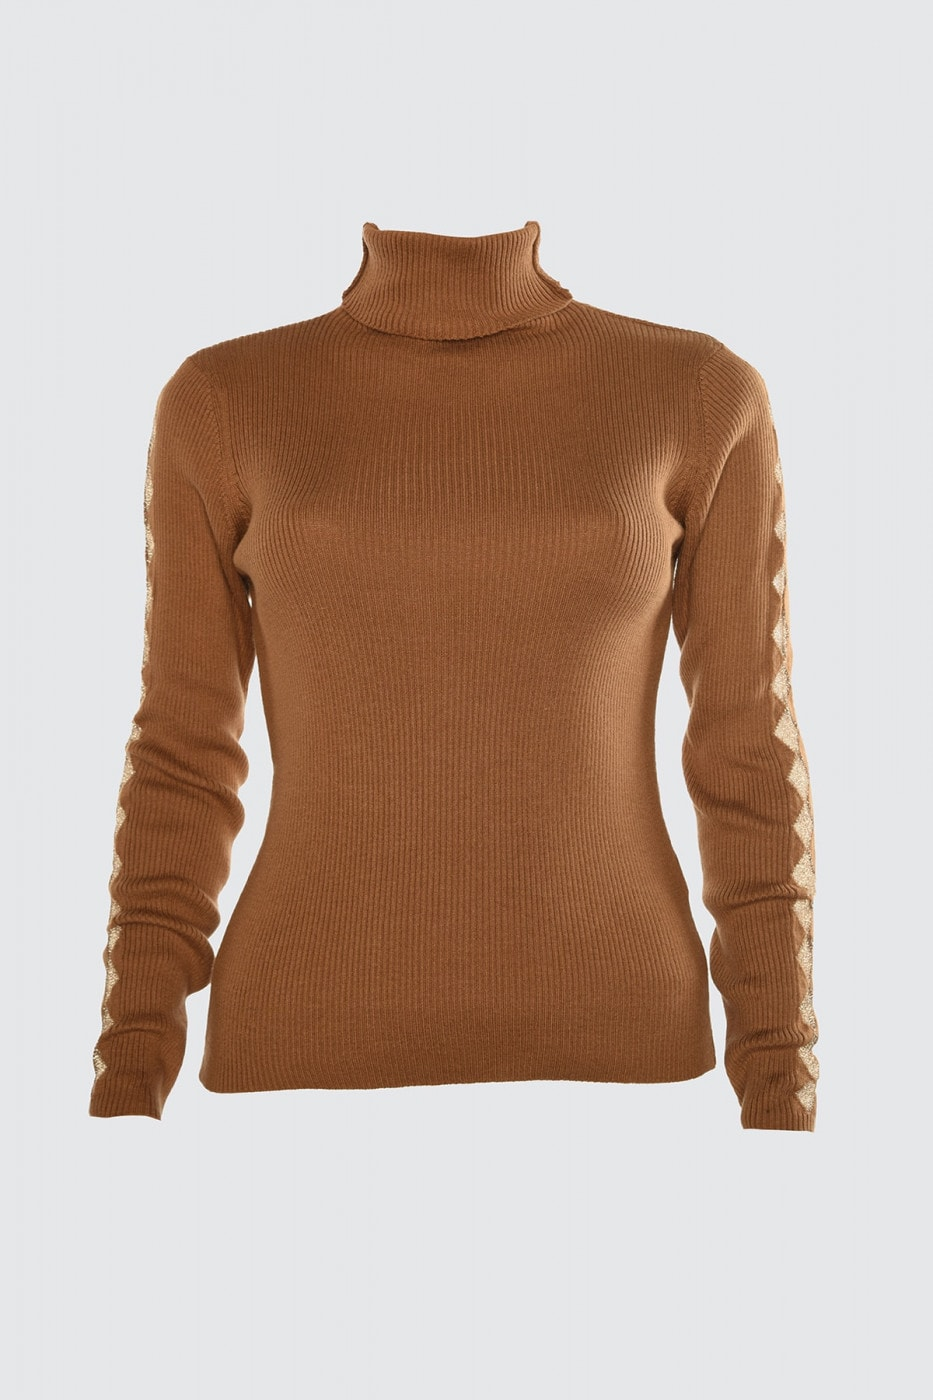 Trendyol Brown Transparent Detailed Knitwear Sweater